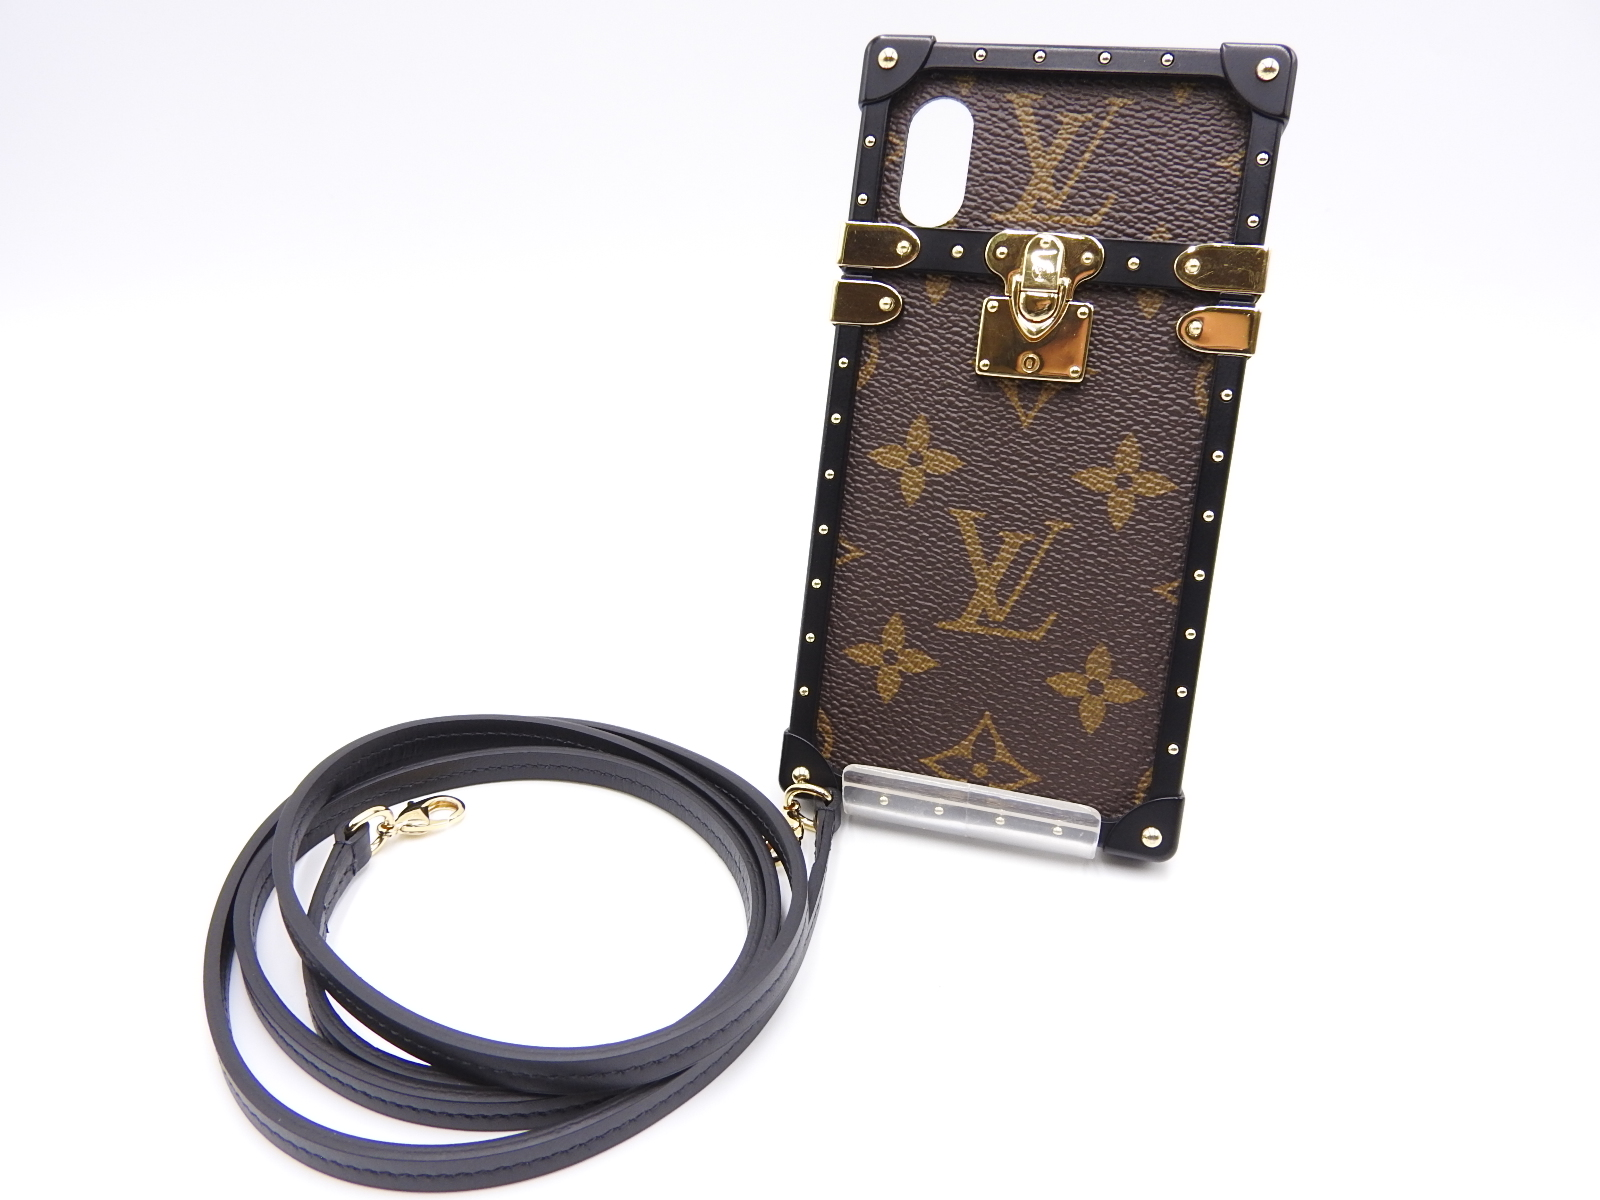 the latest ff231 8276f Details about LOUIS VUITTON Monogram Eye Trunk iPhone X & XS Case Brown  Black Gold M62618 9861